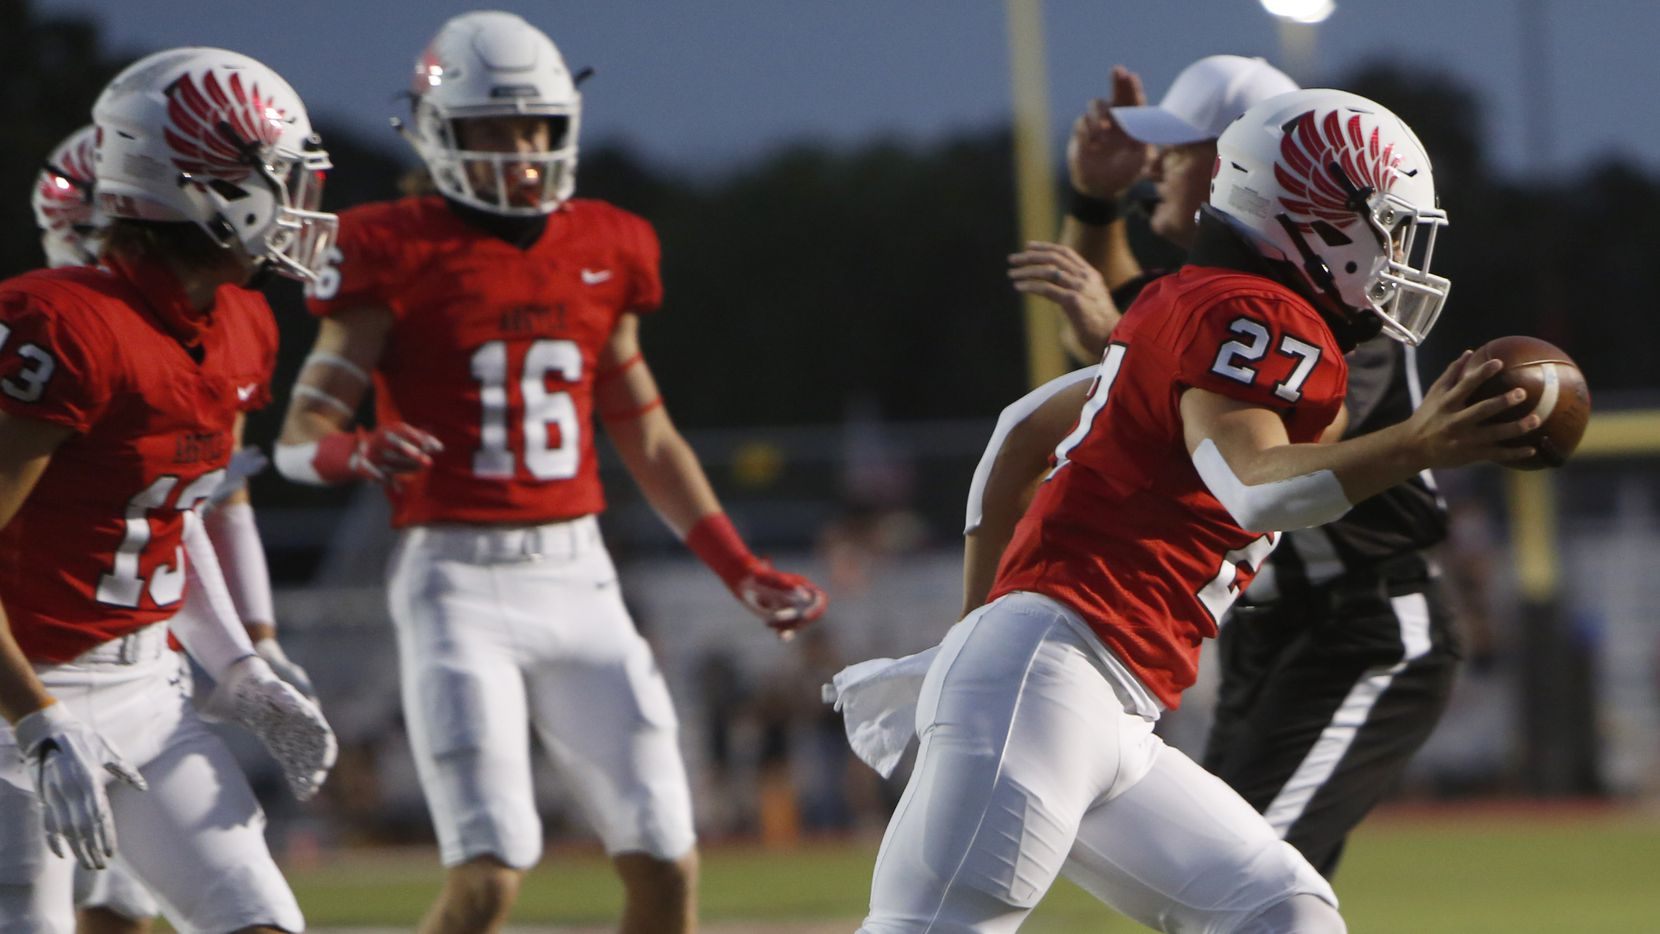 Argyle linebacker Logan May (27) celebrates a first quarter fumble recovery during first quarter action against Waco La Vega. The two teams played their Class 4A football game at Eagle Stadium in Argyle on September 18, 2020.